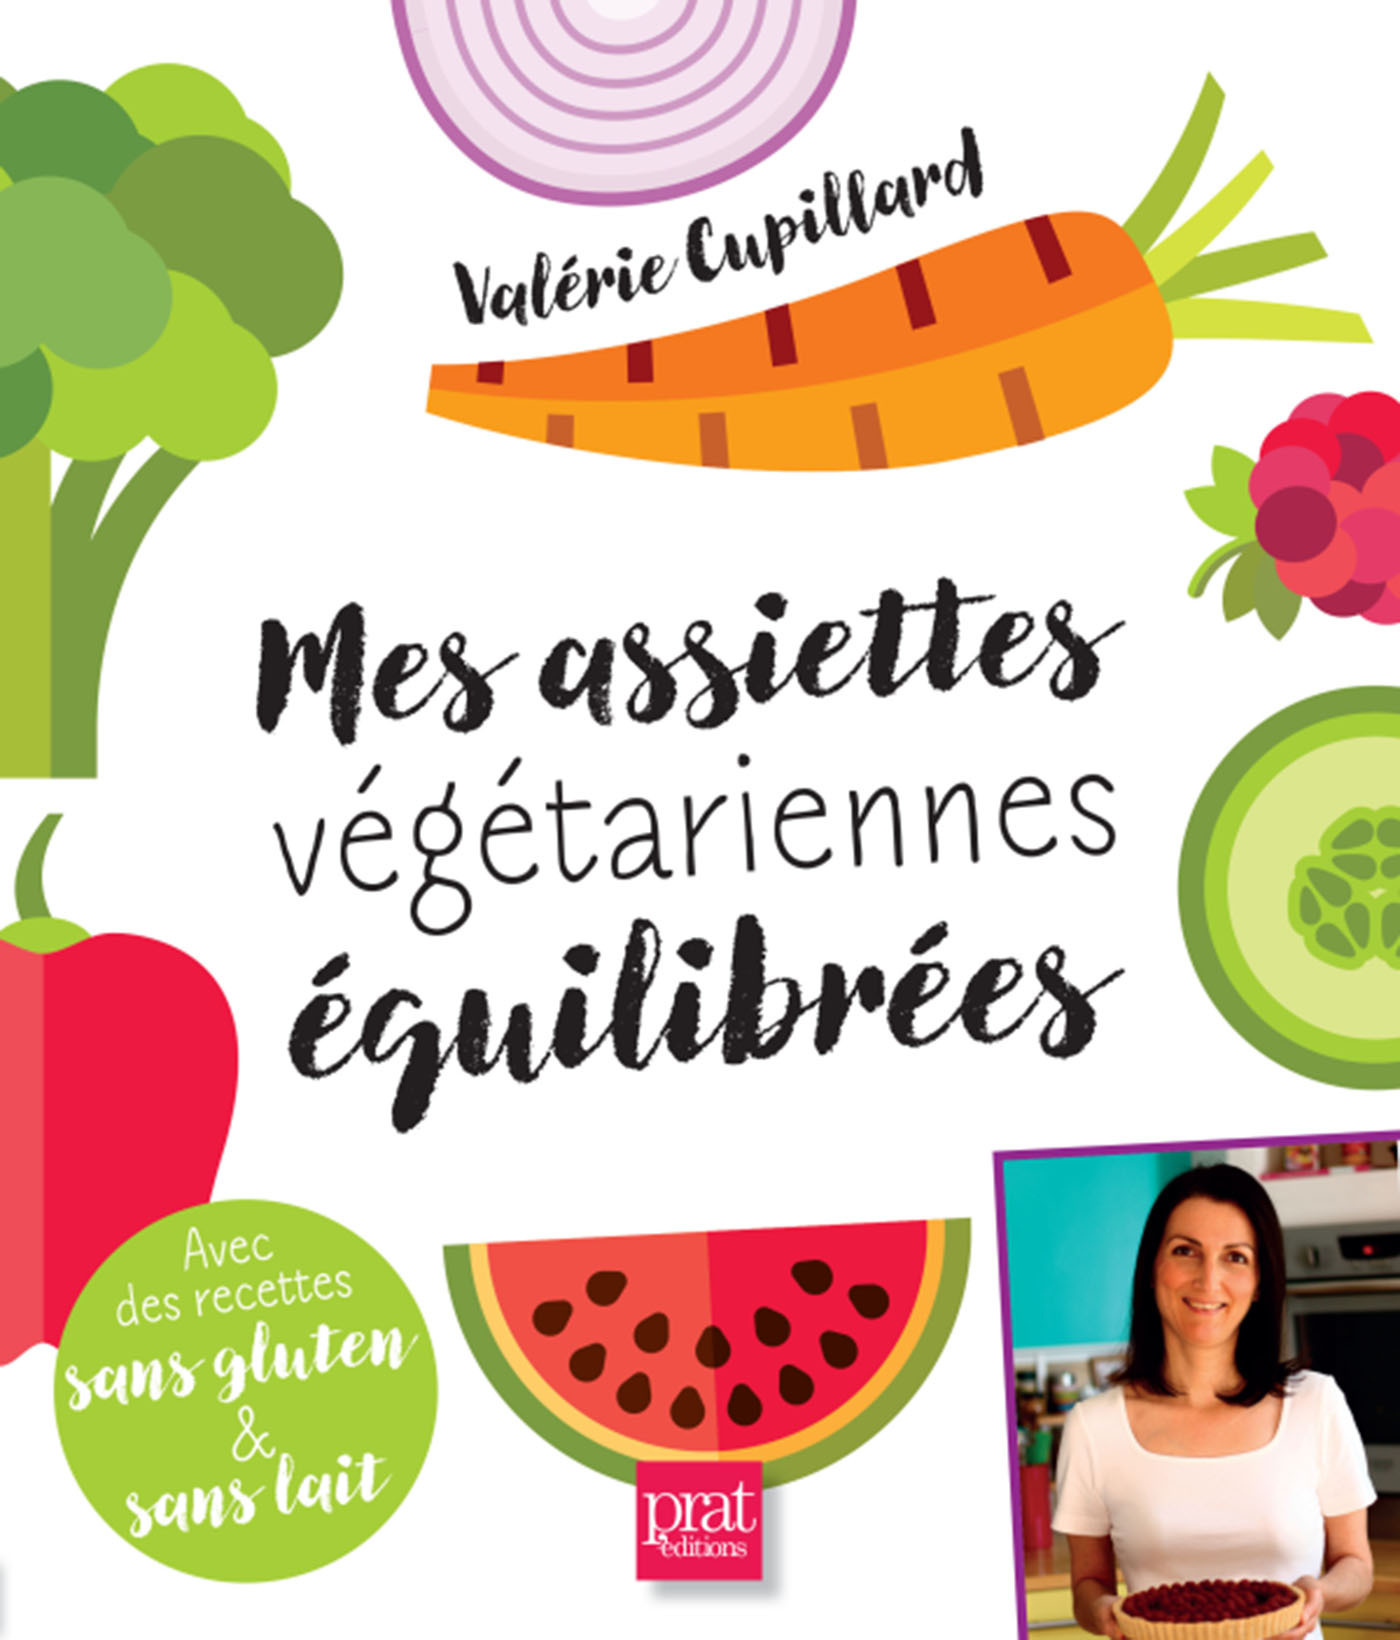 MES ASSIETTES VEGETARIENNES EQUILIBREES